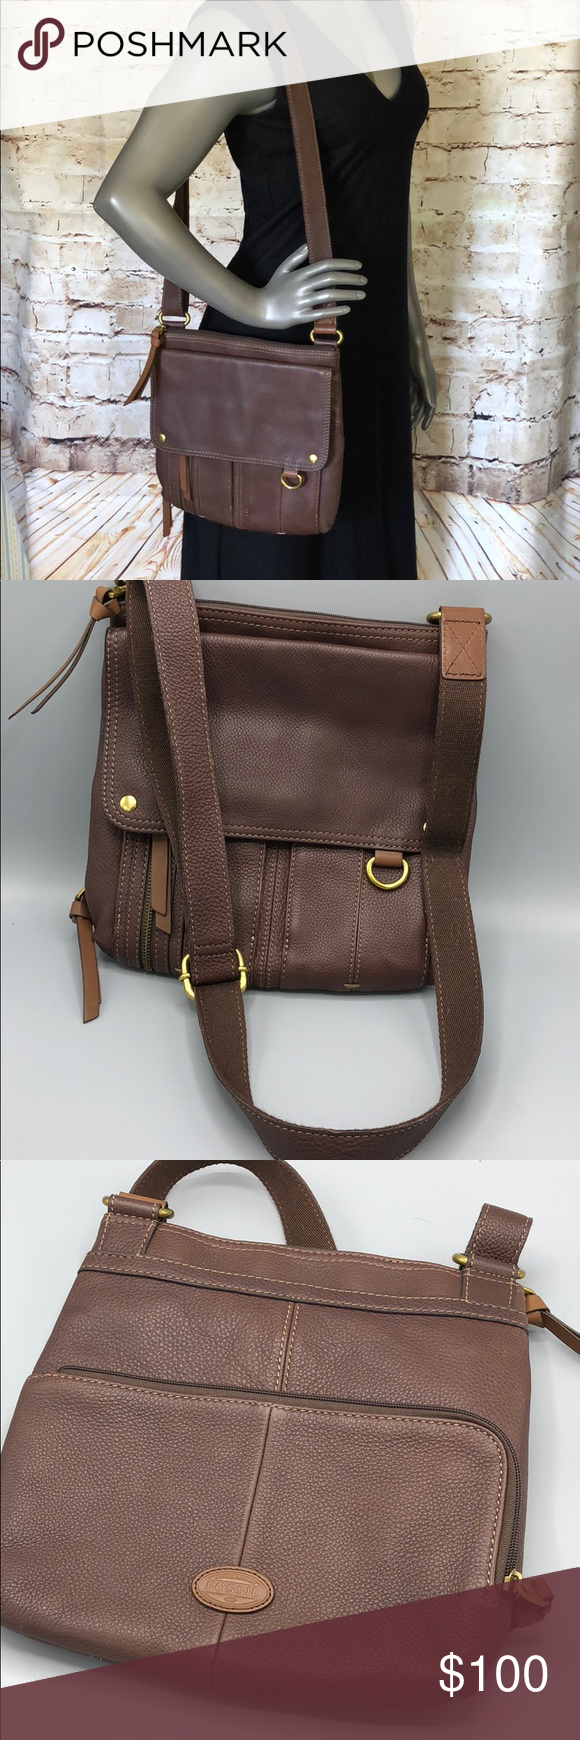 a118cf08e02 Fossil Morgan Traveler Espresso Leather Crossbody This bag appears to be new  without tags no defects